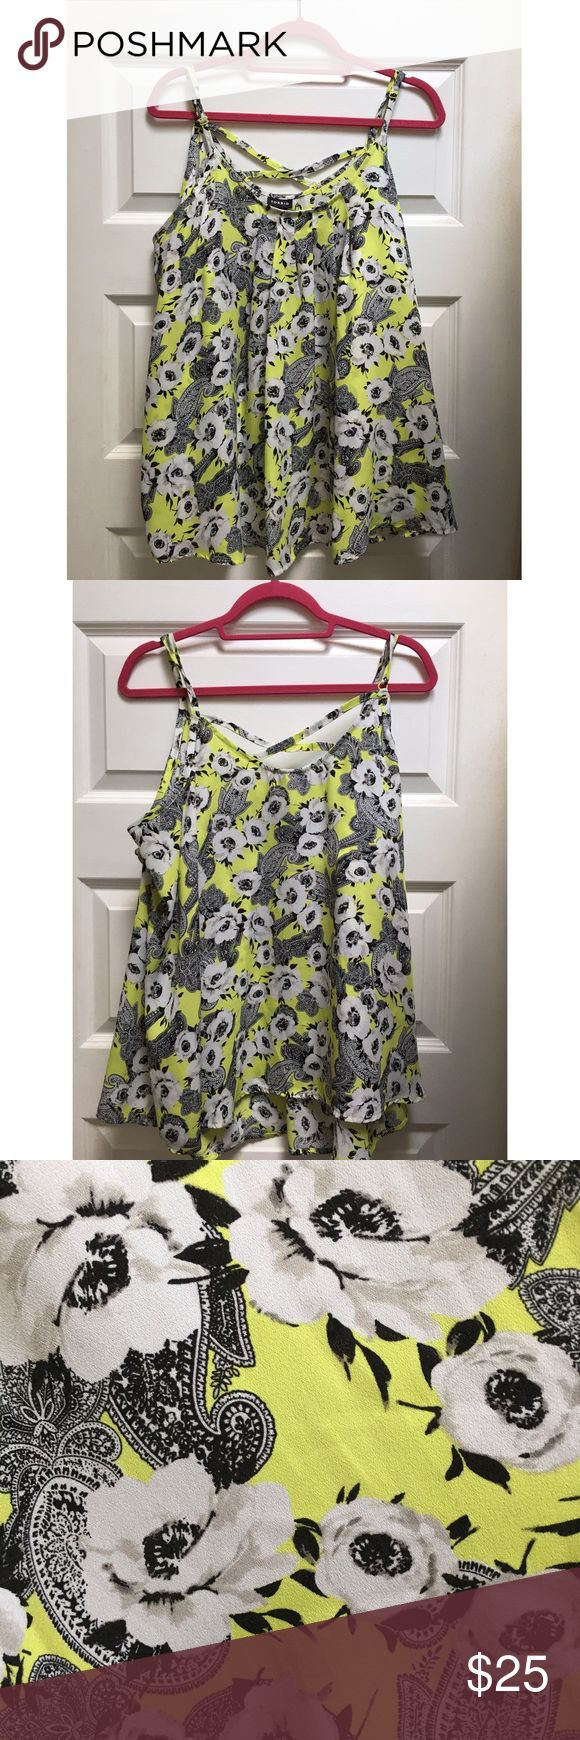 Torrid Paisley/Floral Strappy Tank Super cute & trendy paisley and floral tank. Adjustable straps, flowy. Worn once. True to size. Torrid size 2. torrid Tops Tank Tops